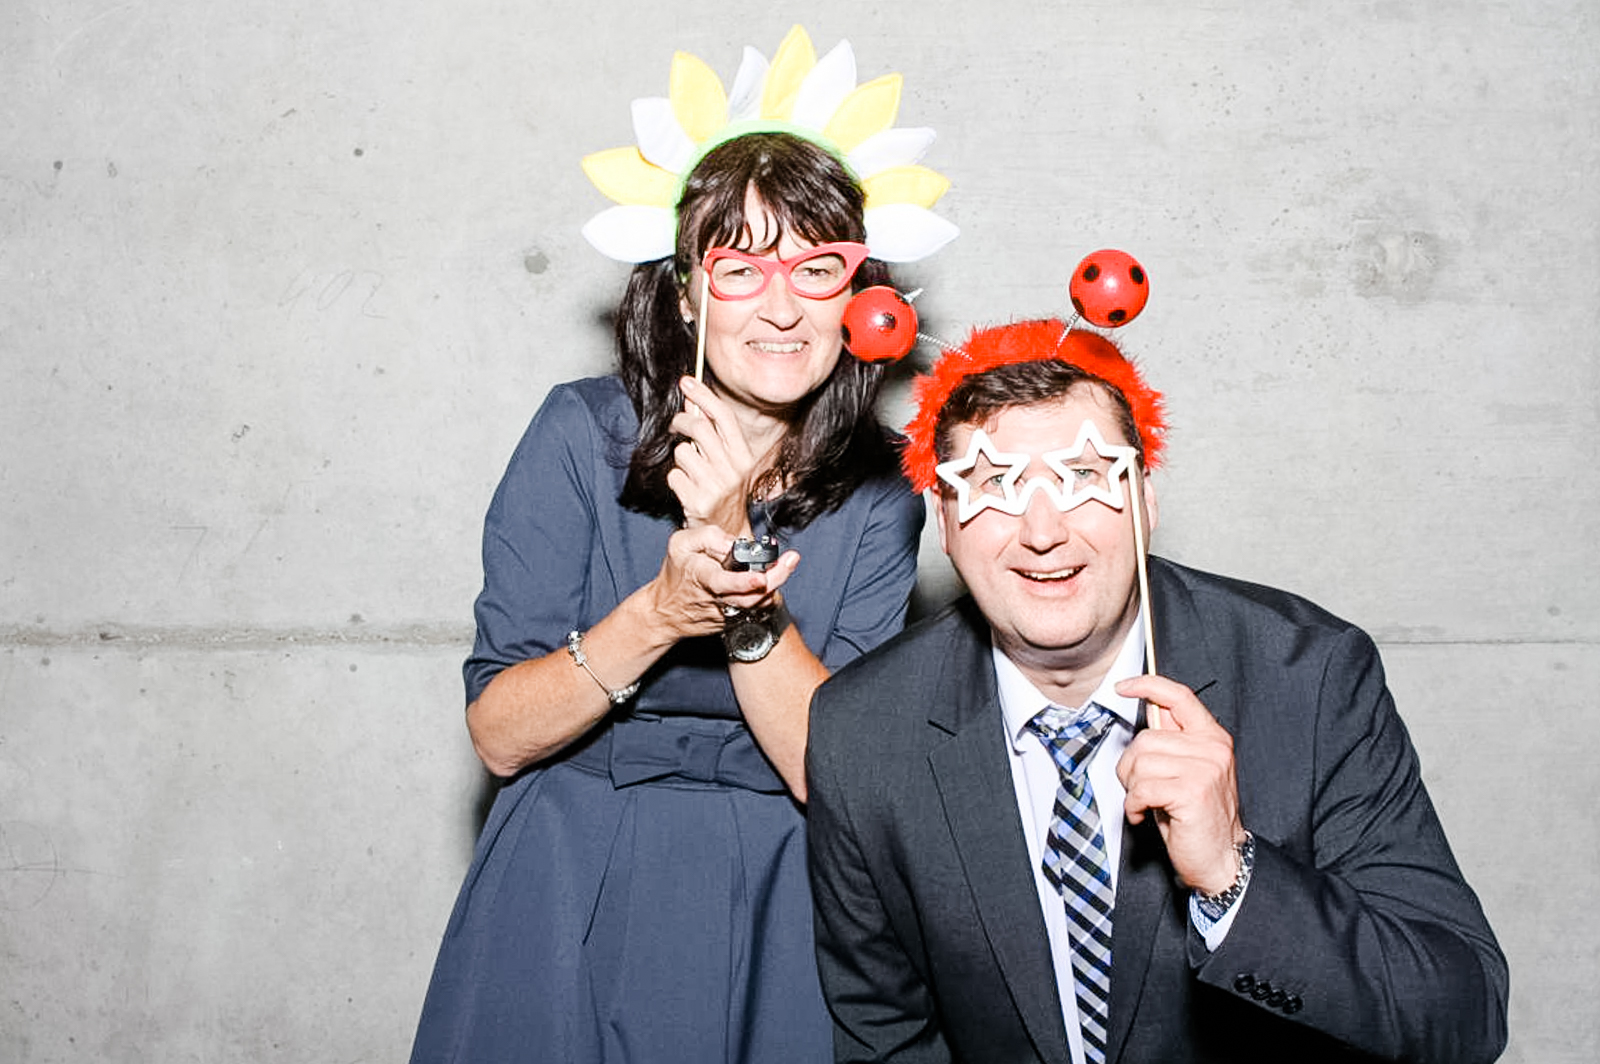 Monstergraphie_Photobooth_Zeche_Zollverein-22.jpg?fit=1600%2C1064